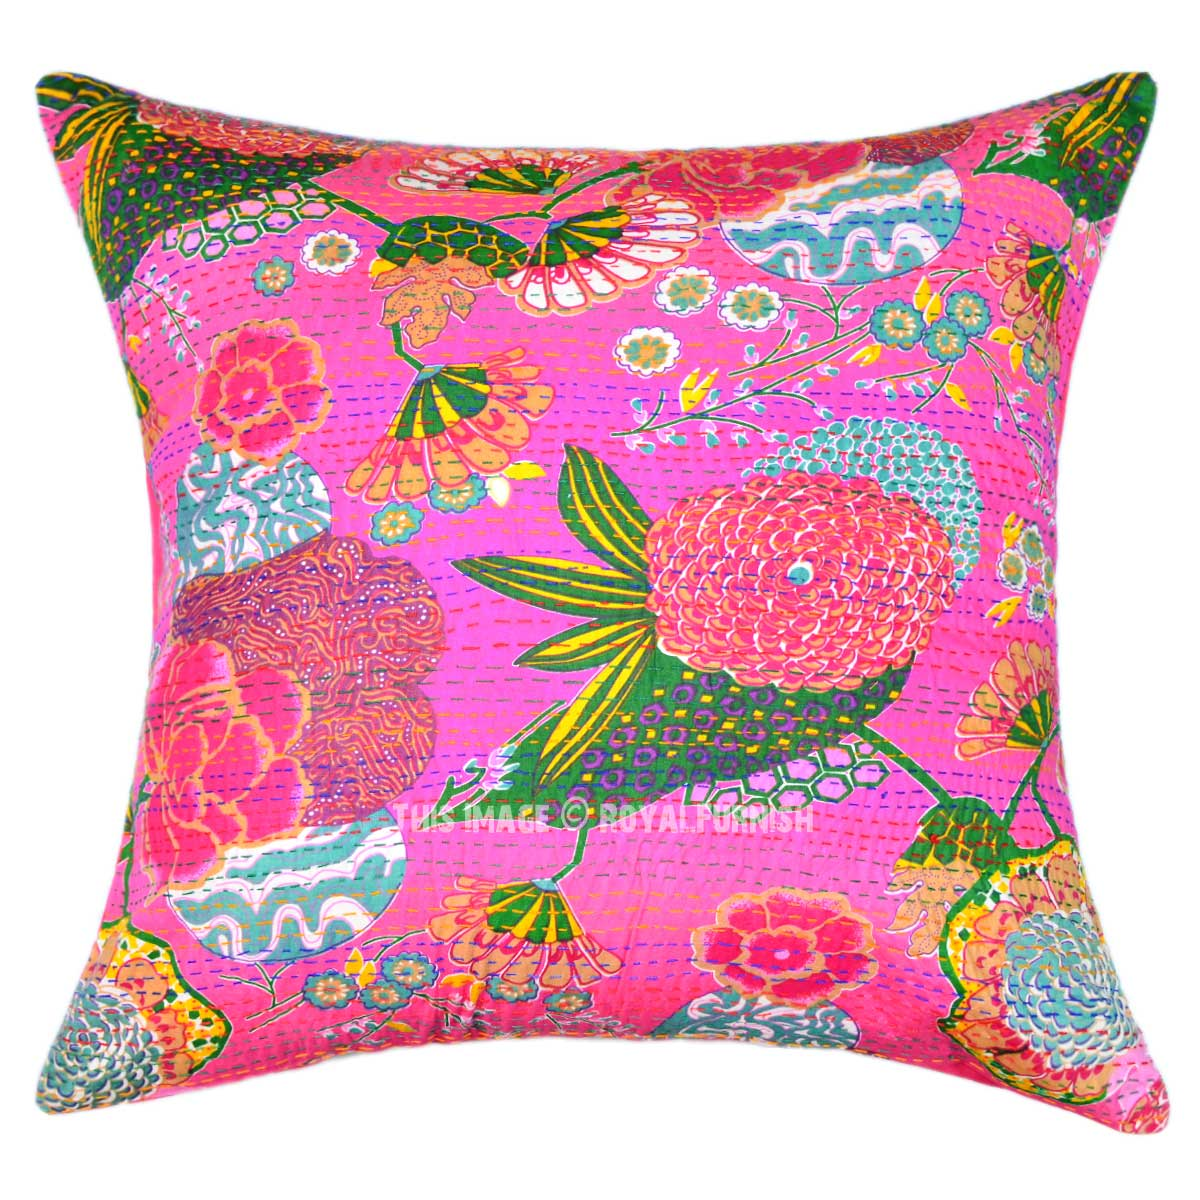 Oversize Decorative Square Kantha Throw Pillow Cover Boho